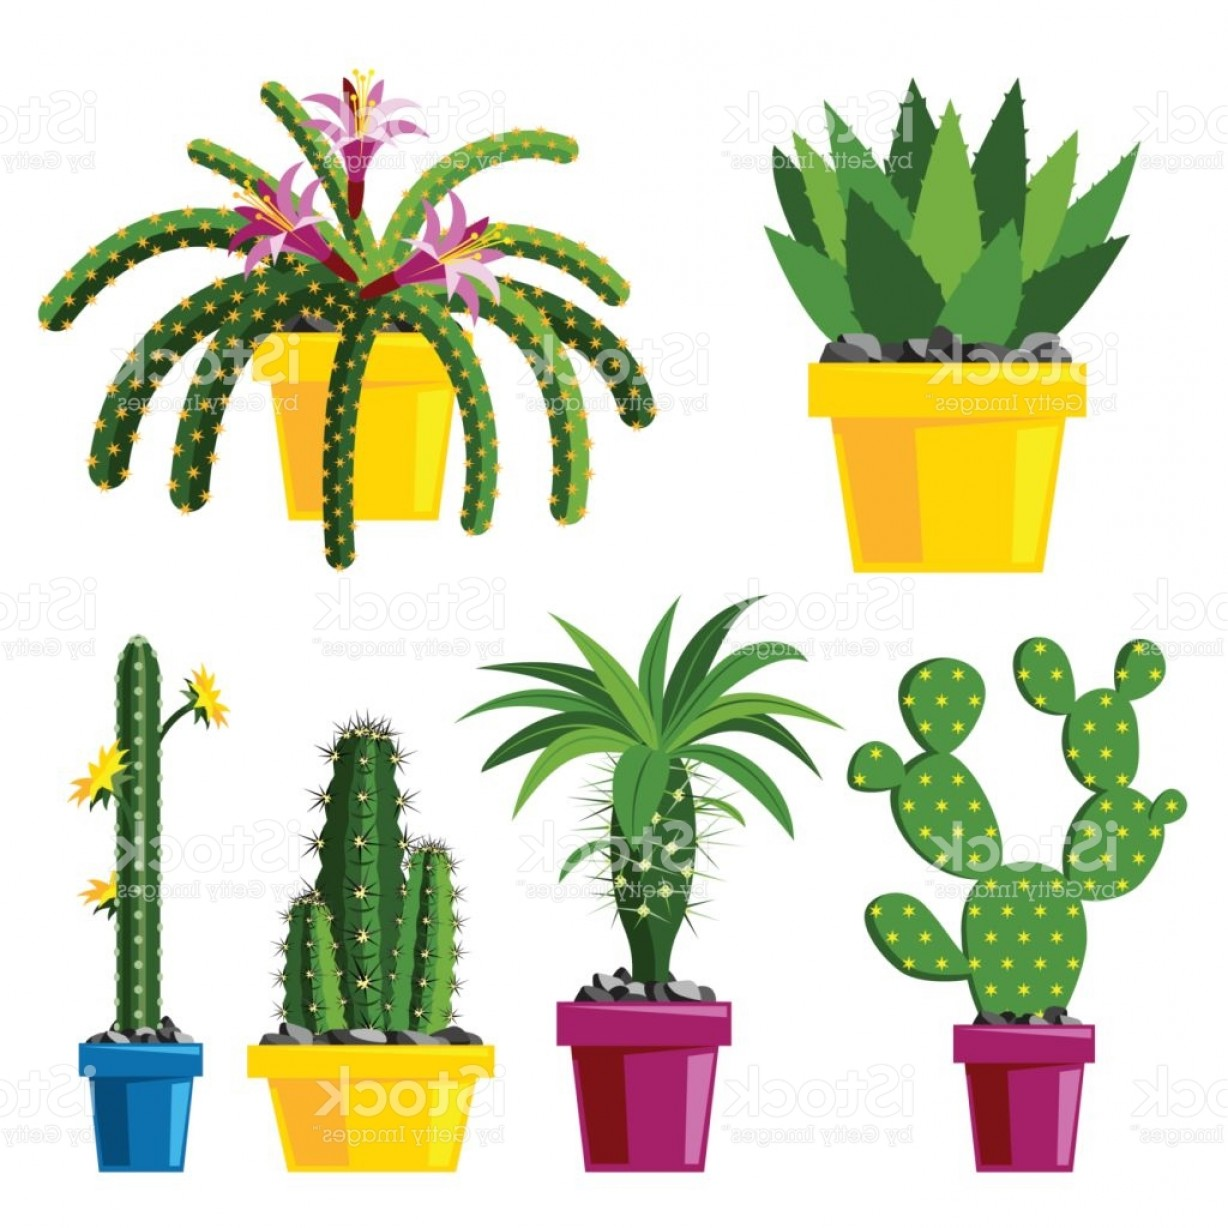 Cactus And Flower Vector: Cactus Flat Style Nature Desert Flower Green Cartoon Drawing Graphic Mexican Gm